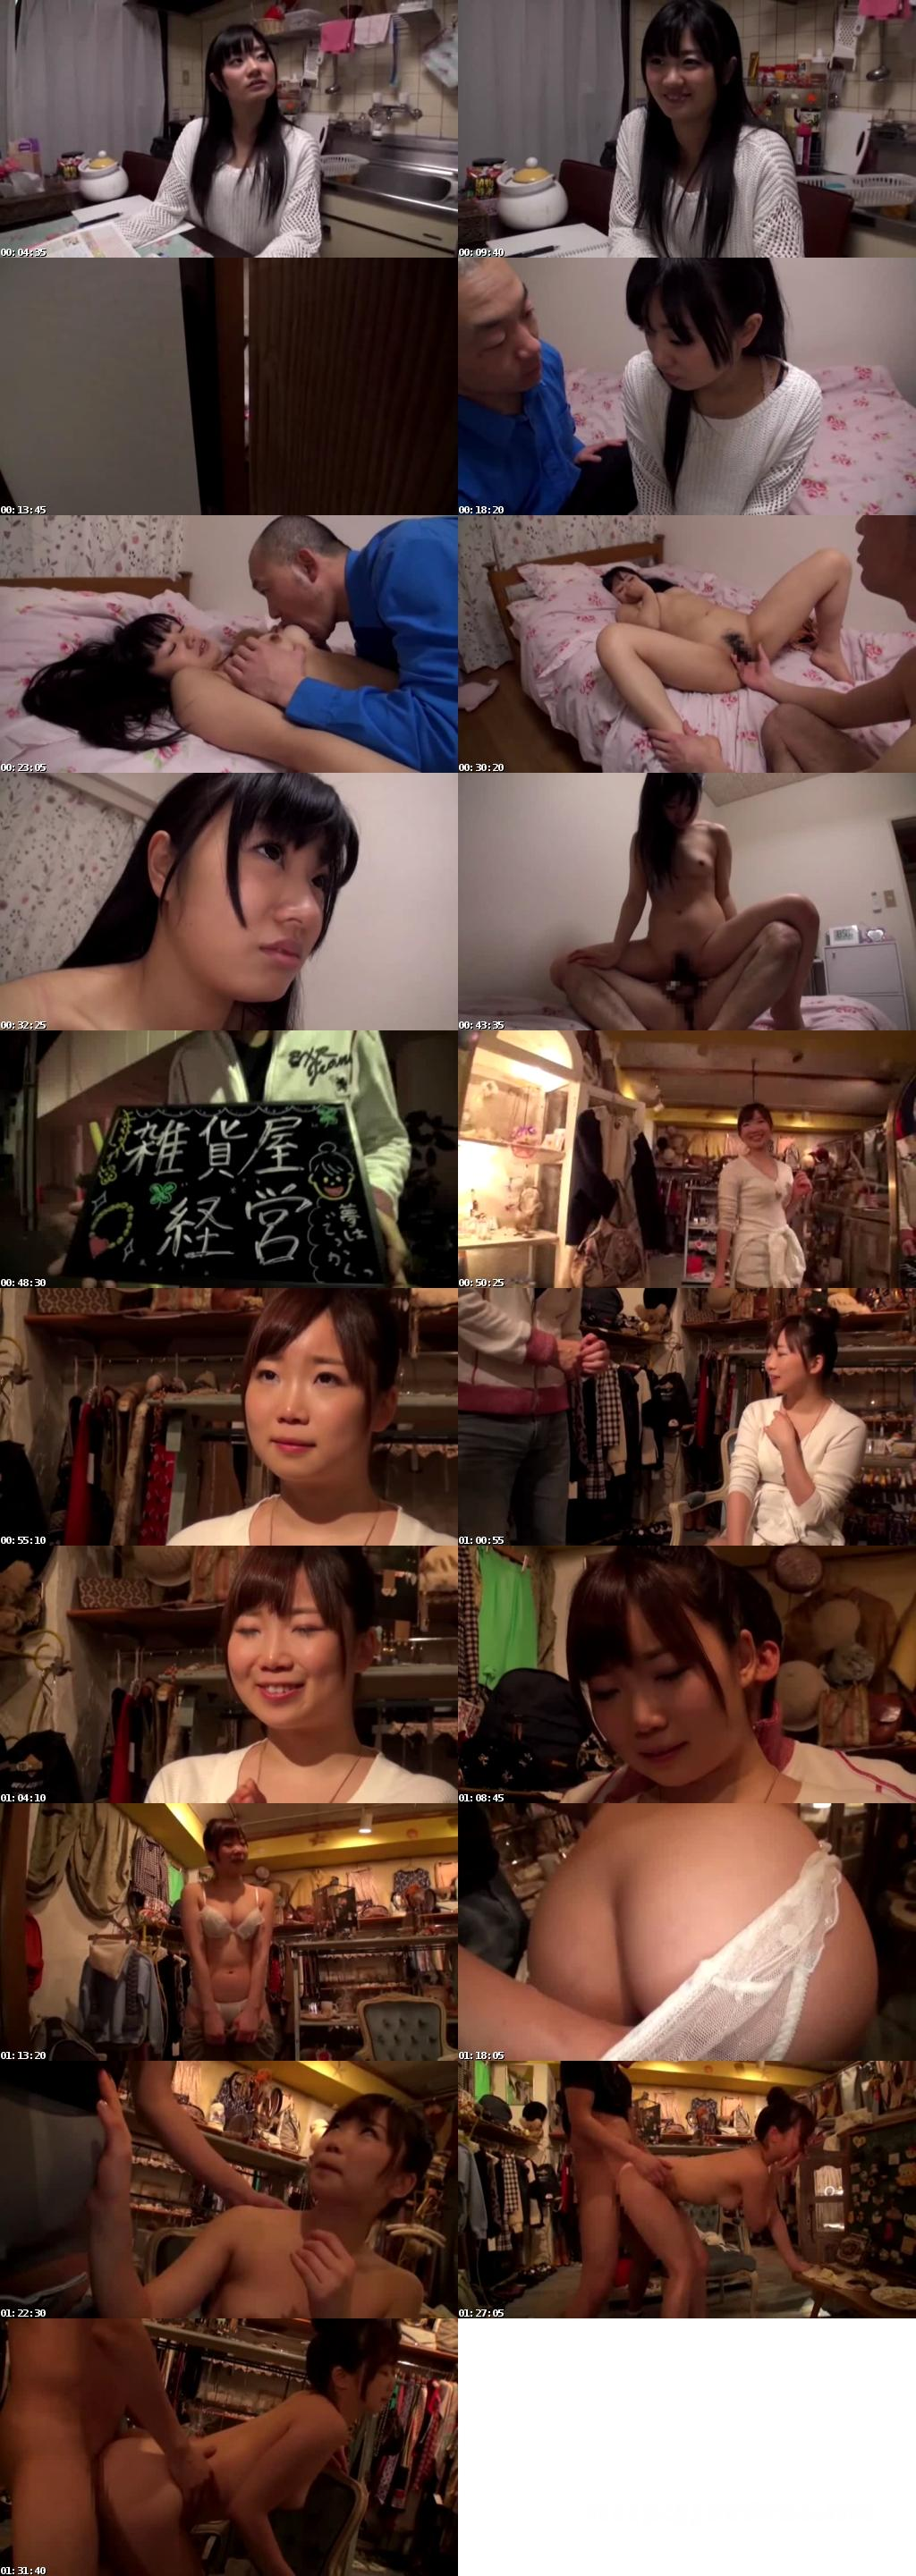 [YRH-039] 夢持ち素人応援企画 5 - image YRH-039b on https://javfree.me